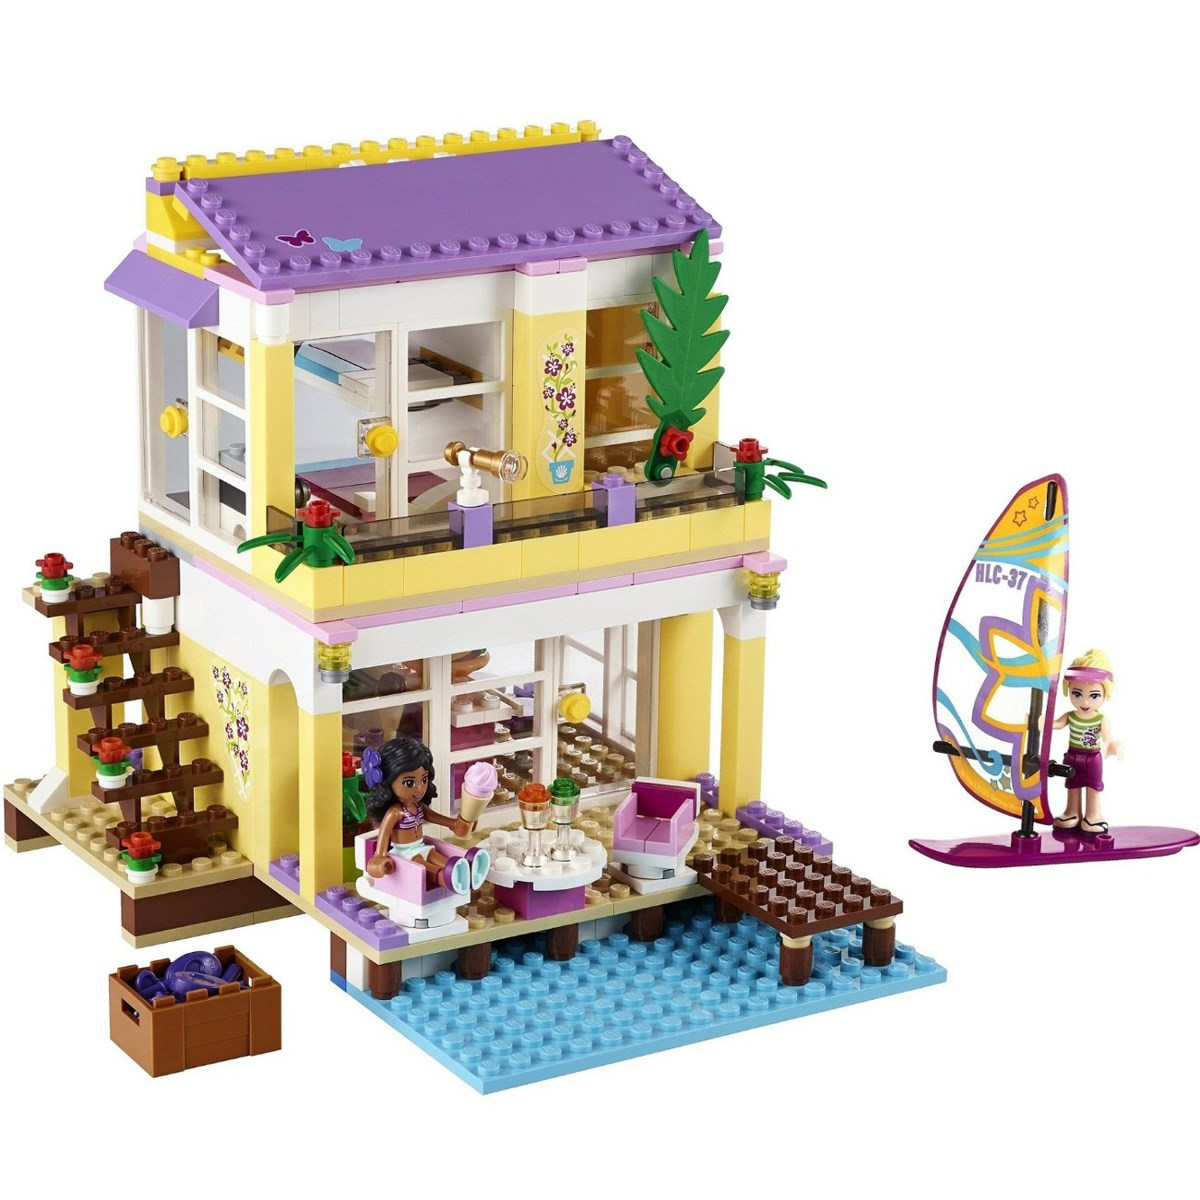 Do choi LEGO Friends 41037